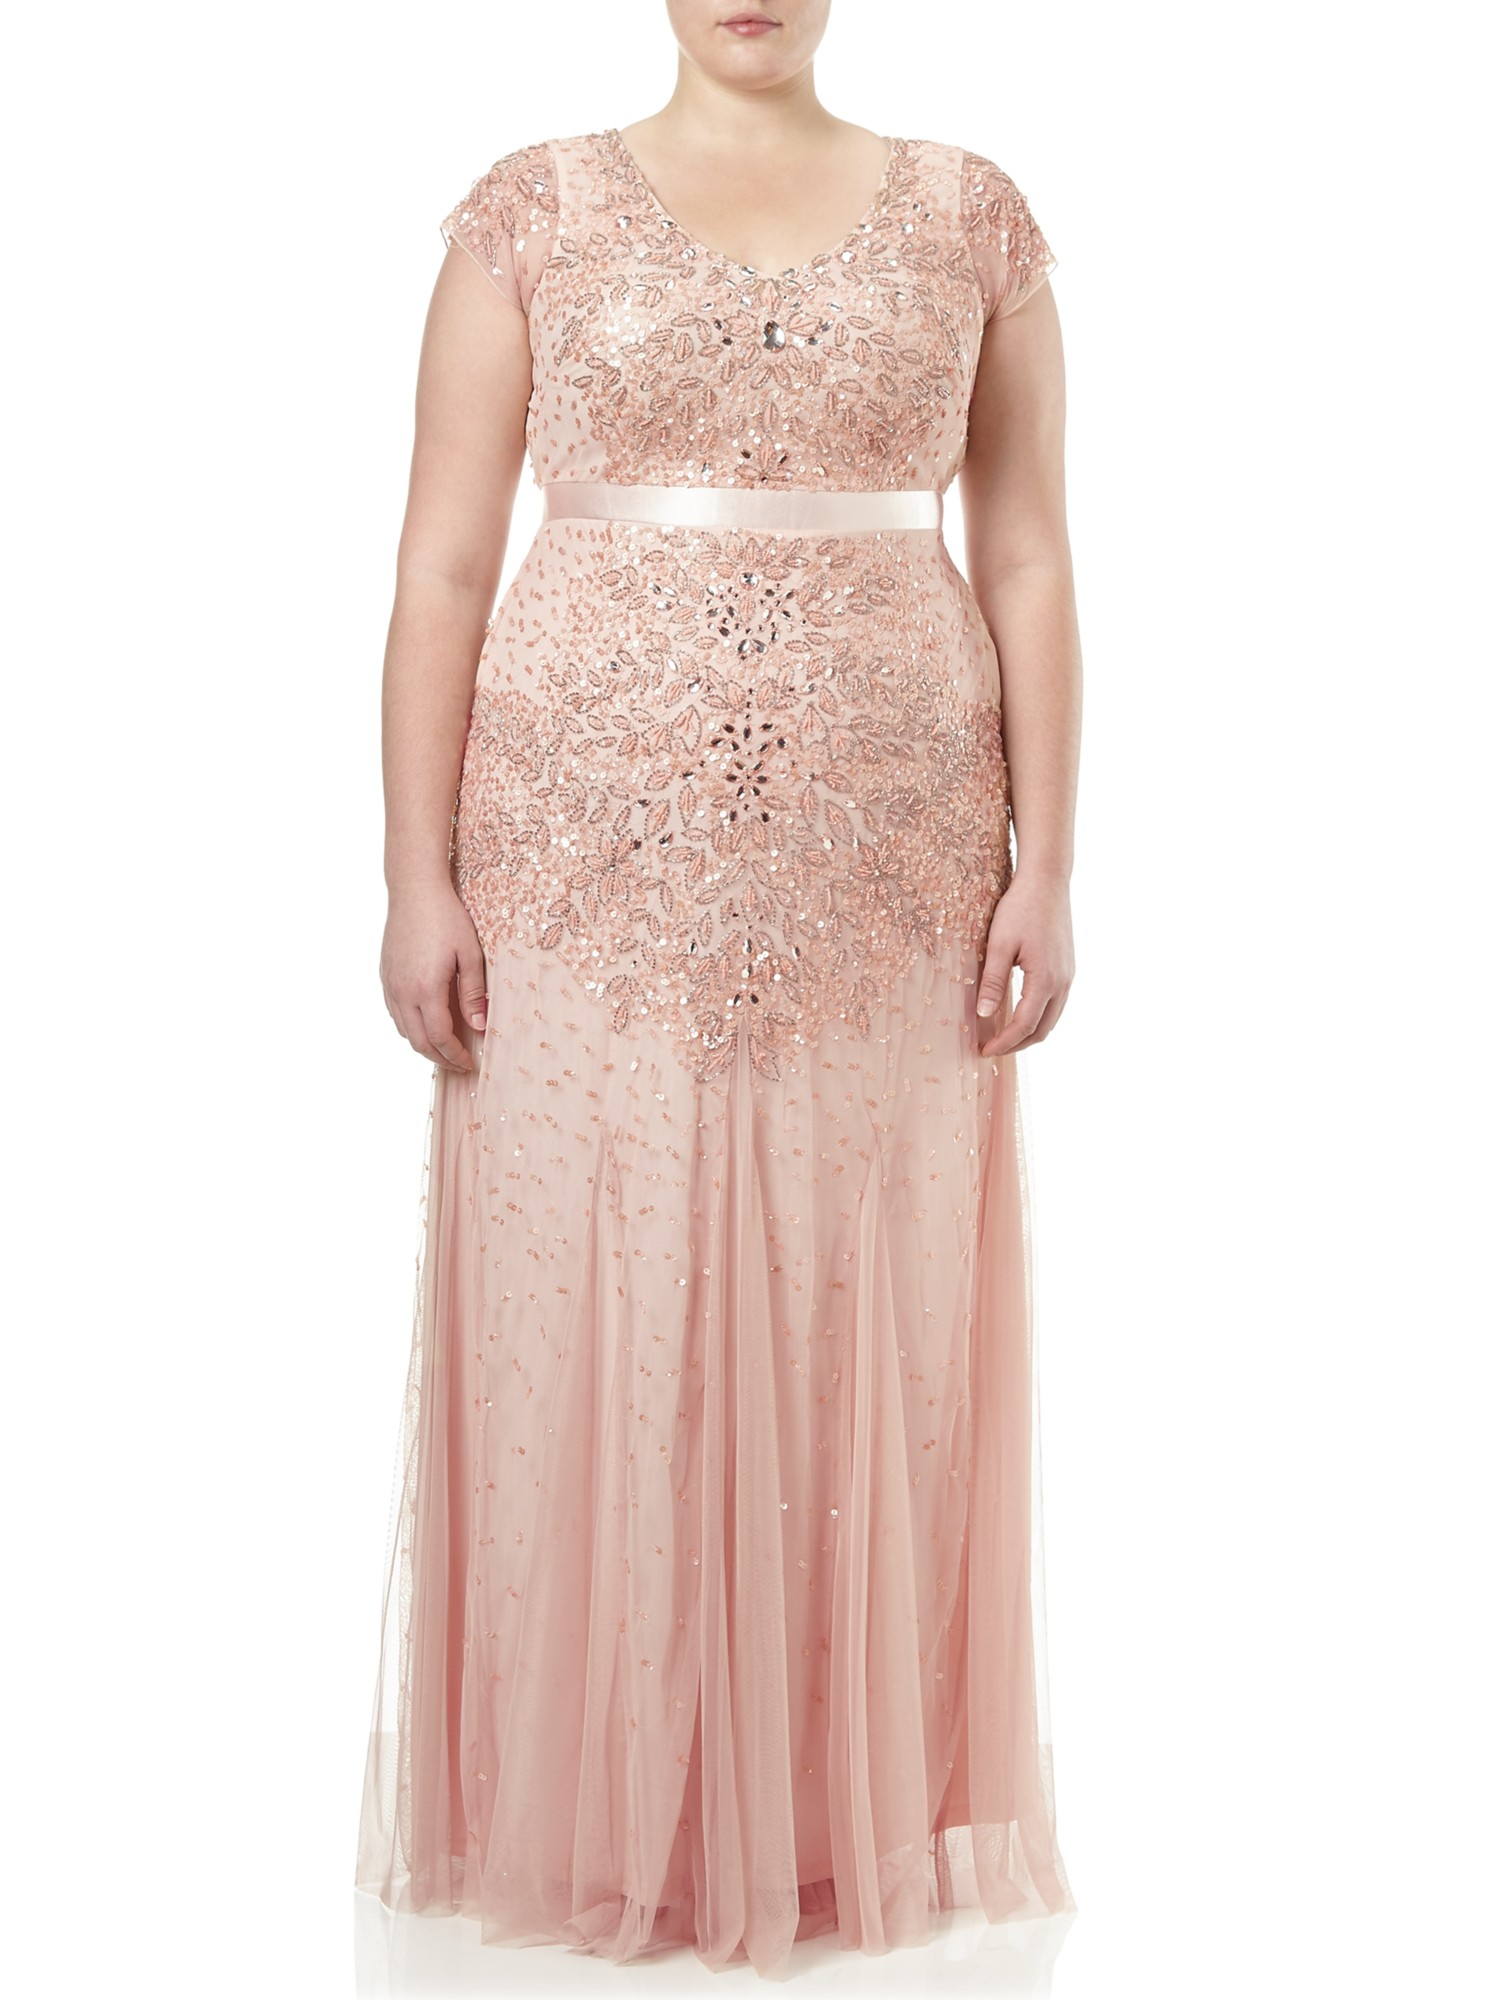 Adrianna Papell Plus Size Long Beaded Dress in Pink - Lyst